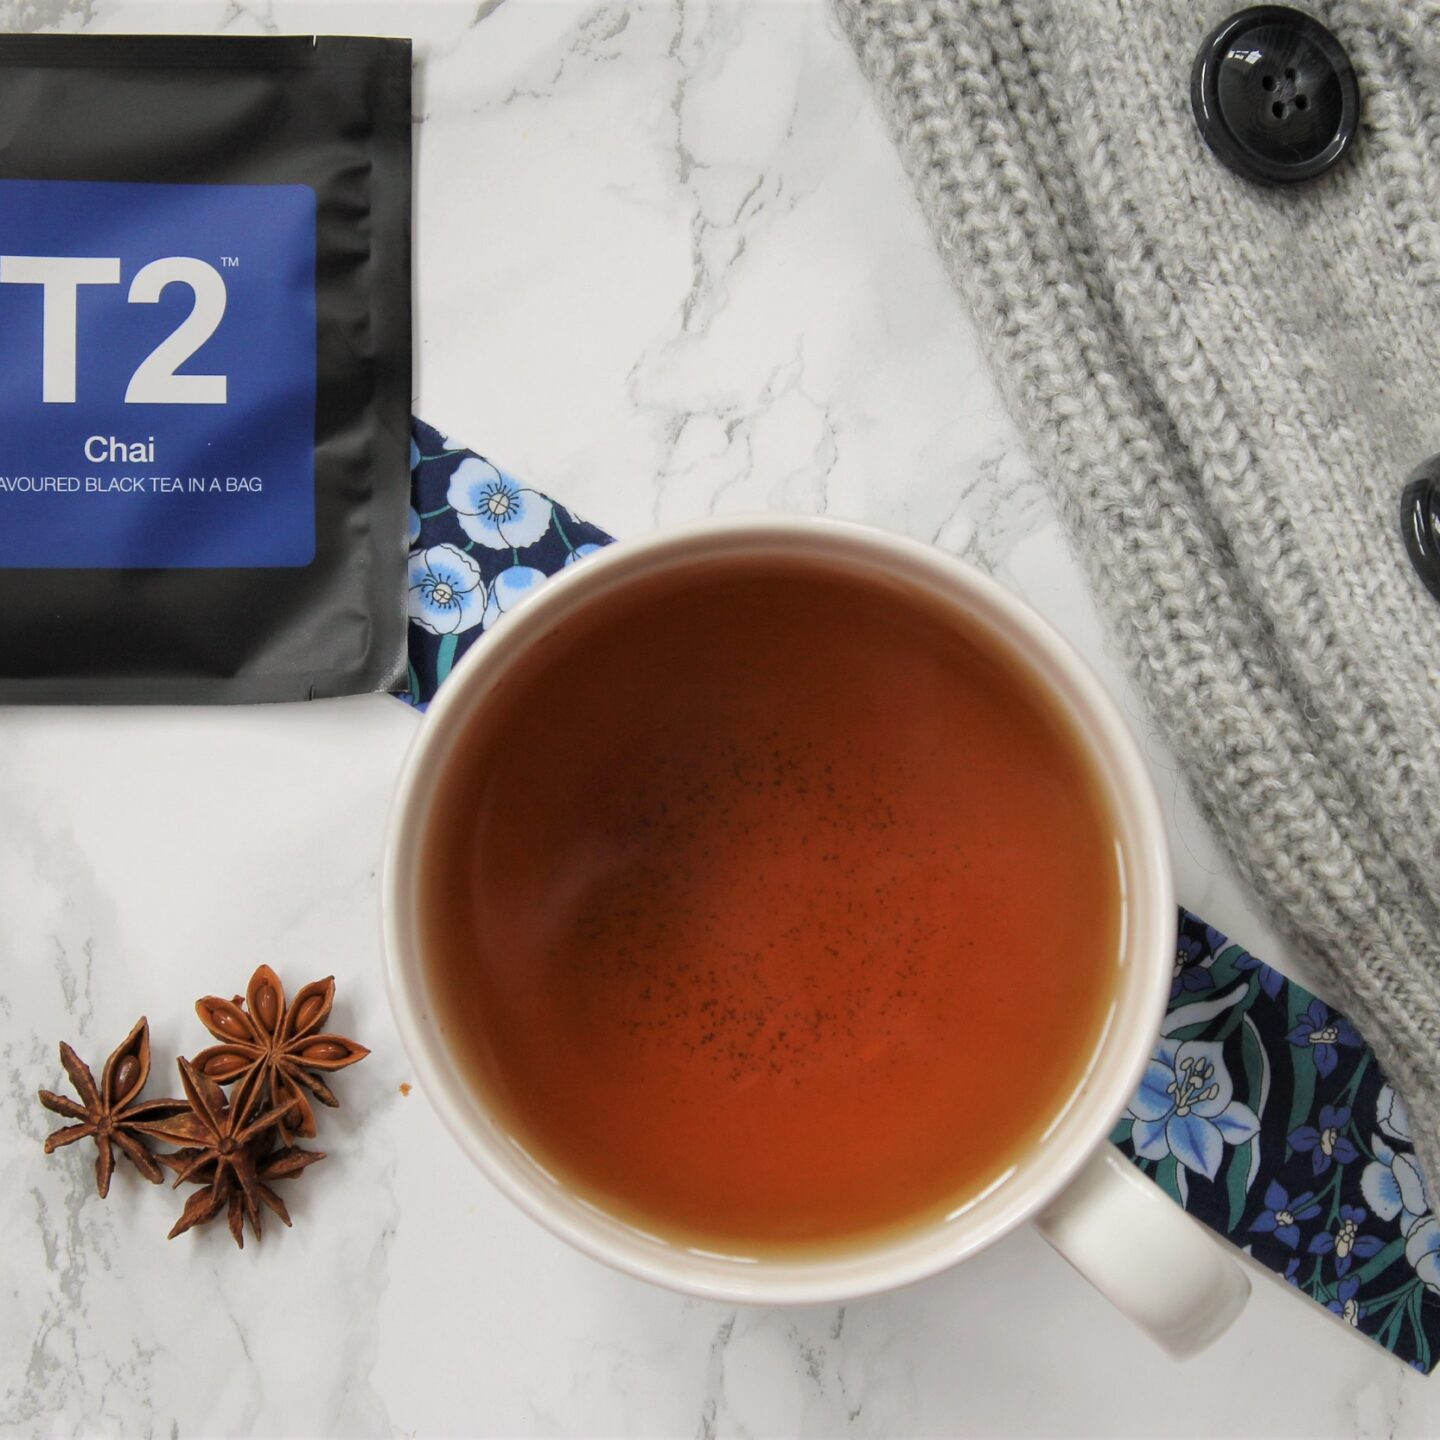 T2 Chai Tea Review